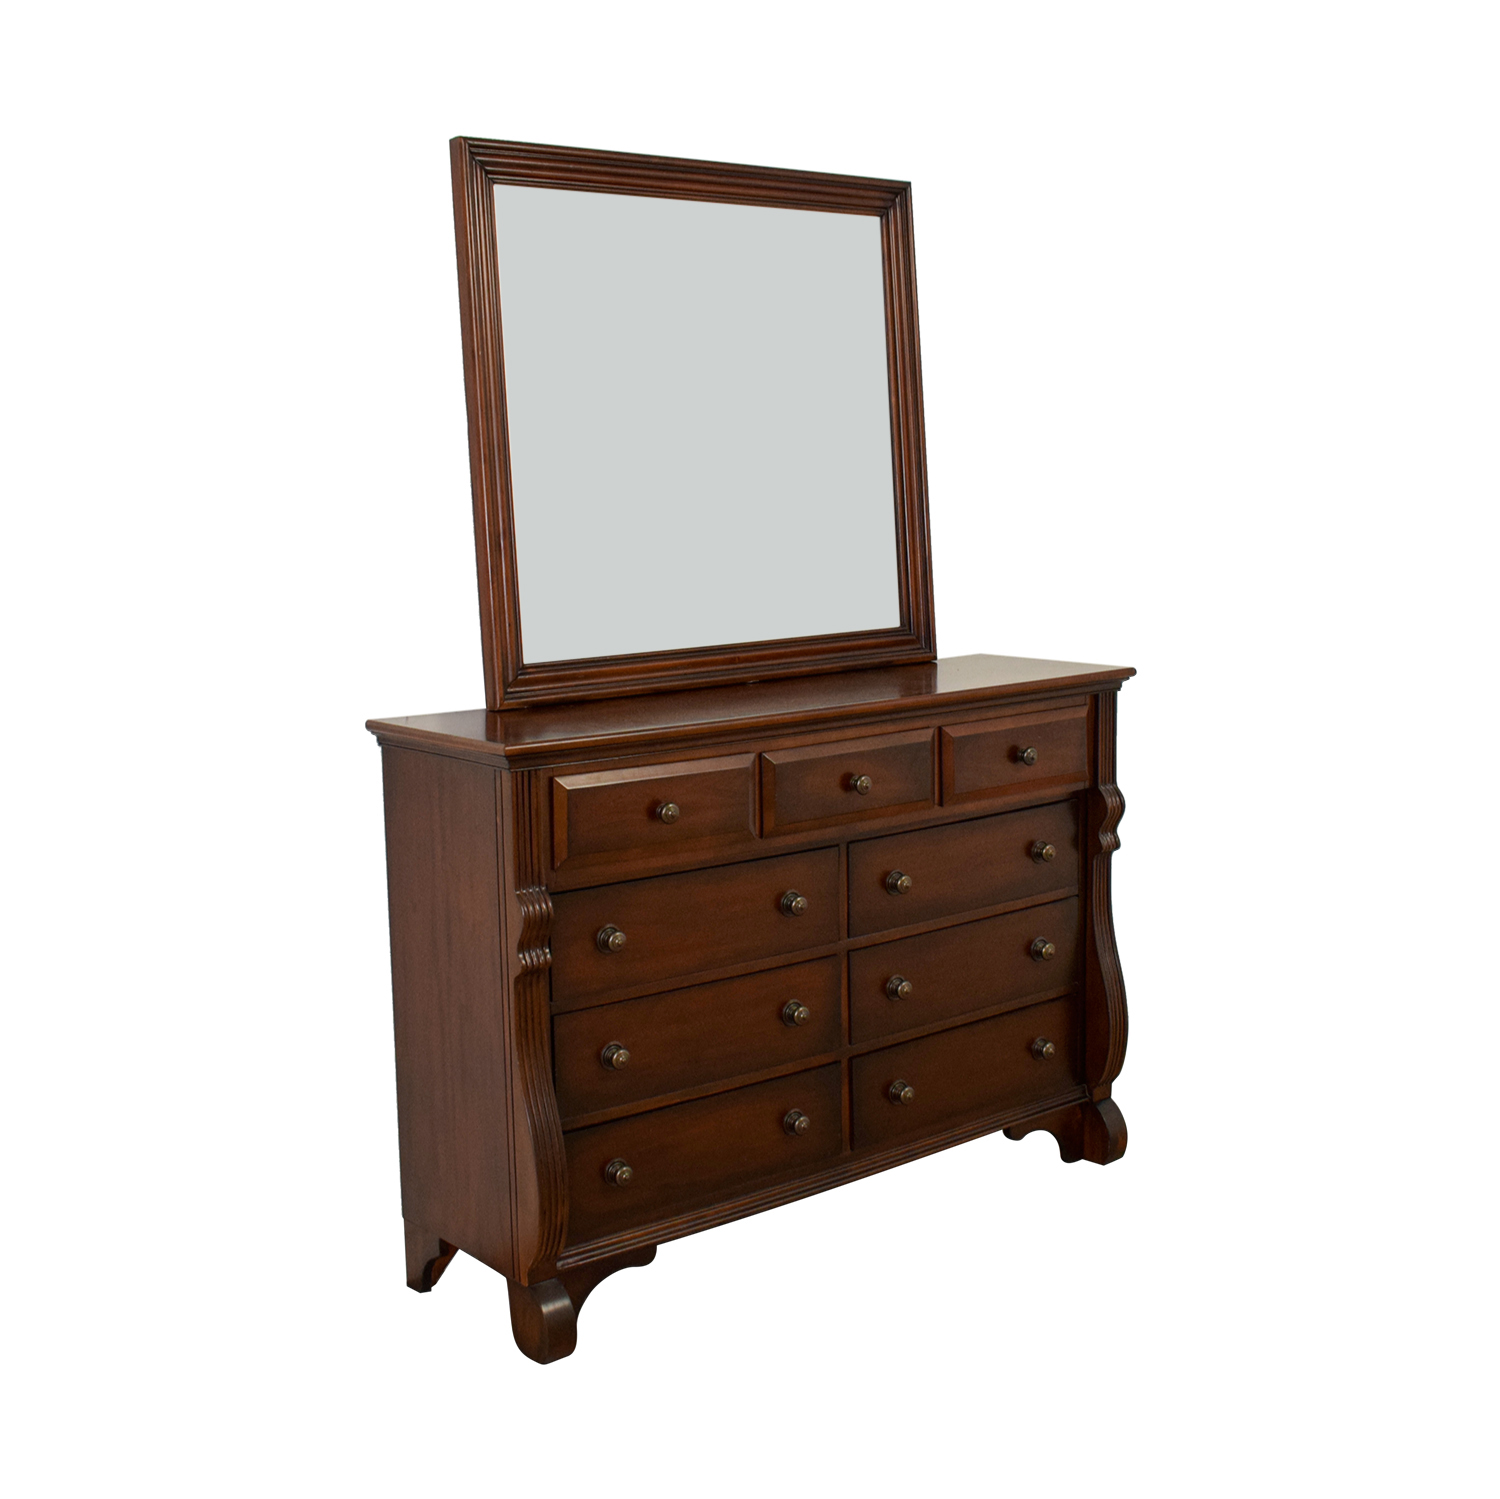 Bob's Furniture Nine-Drawer Dresser with Mirror / Dressers